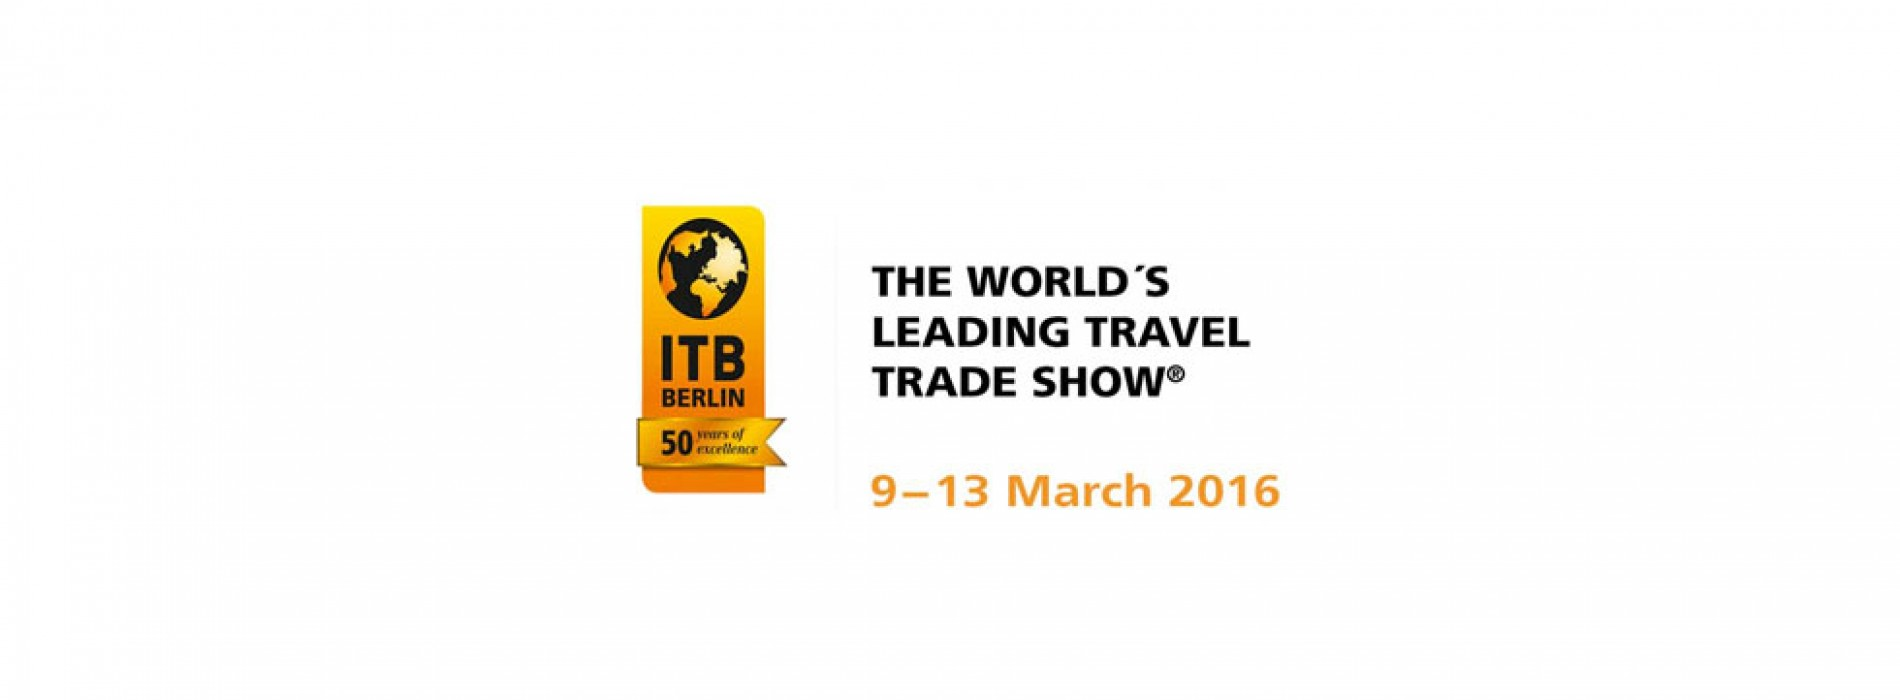 ITB Berlin 2016: Show provides strong economic boost to calm fears